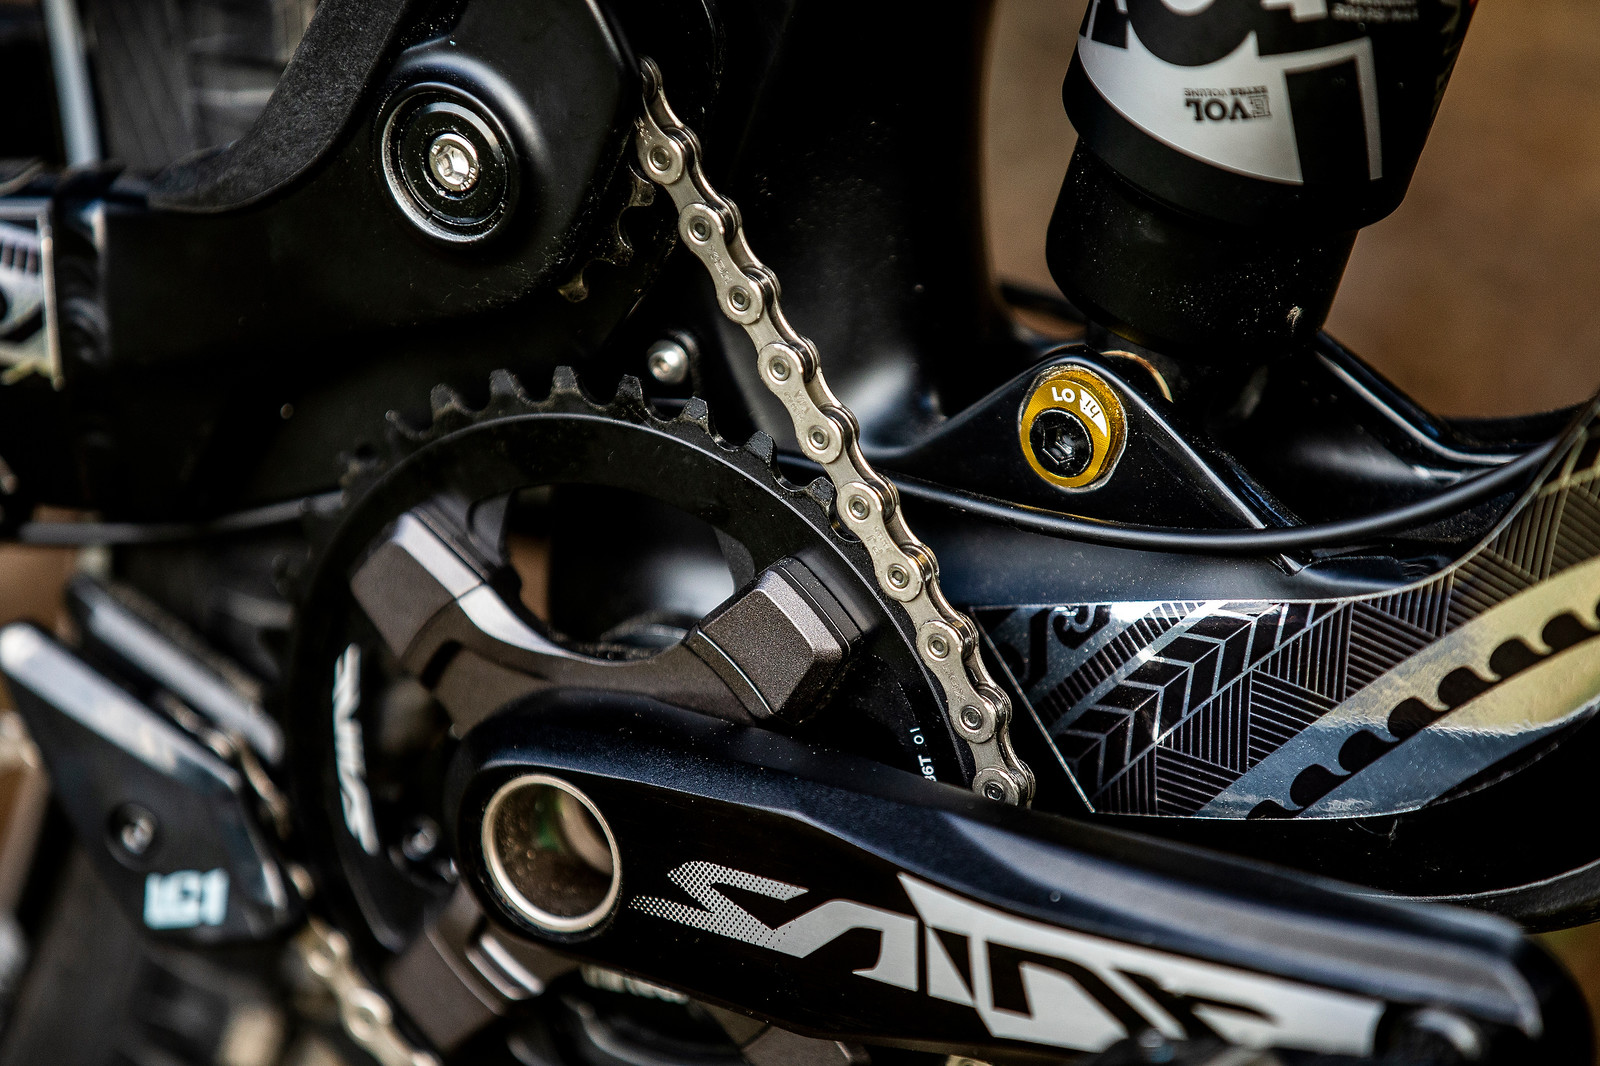 Idler Up Close - WORLD CHAMPS BIKE - Wyn Masters' GT Fury - Mountain Biking Pictures - Vital MTB